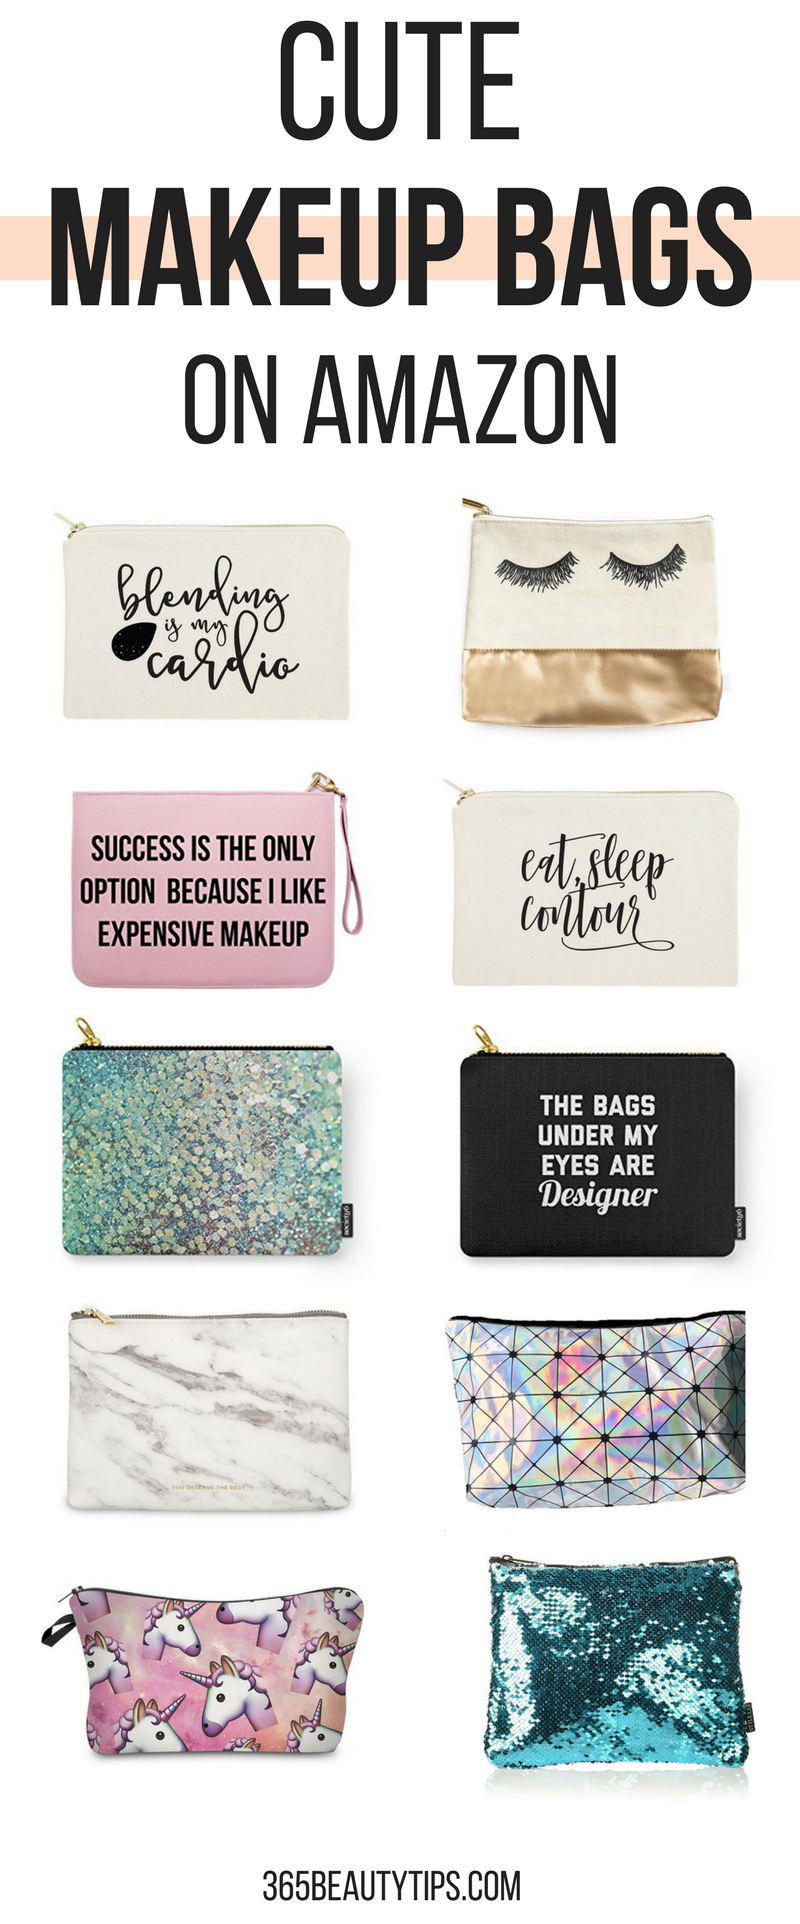 Cute makeup bags on Amazon